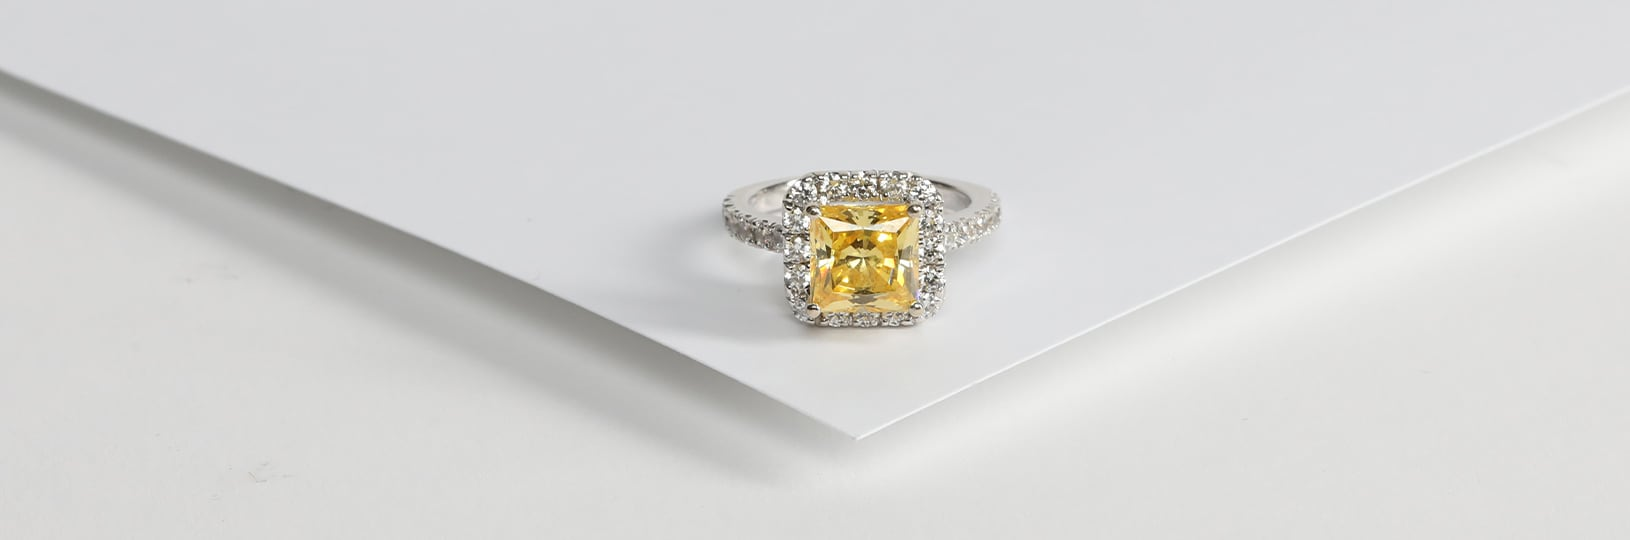 Canary engagement ring.